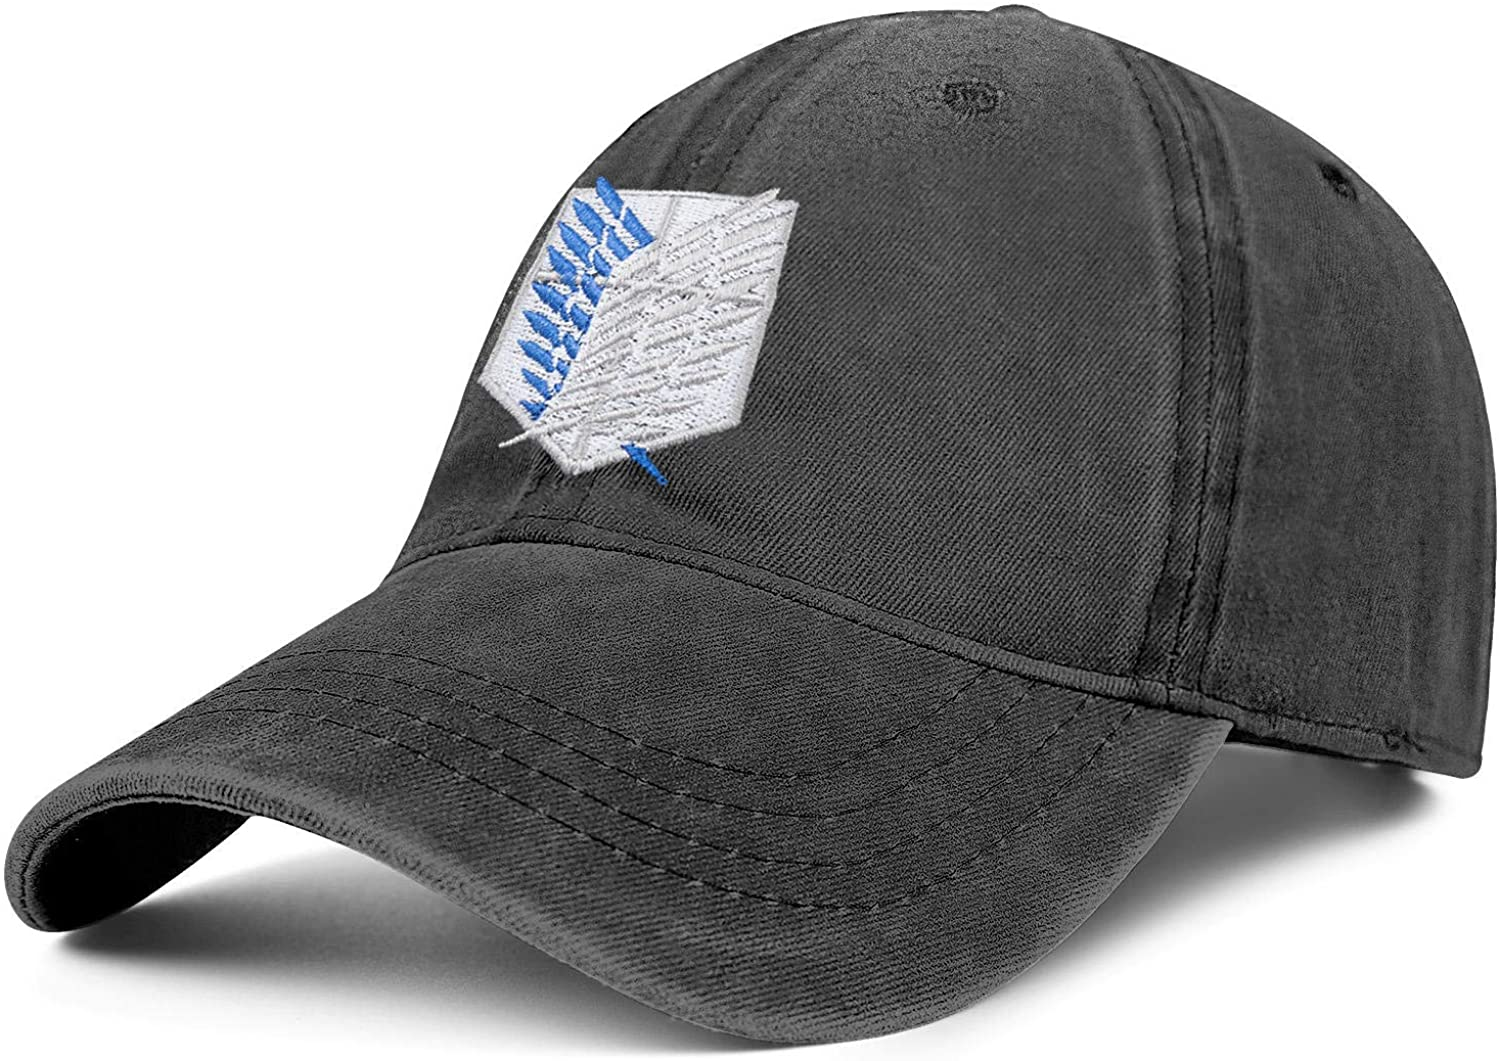 Unisex Adjustable Anime Team Hat Embroidery Baseball Cap Dad Hats Denim Hat Attack on Titan Hat - One Size Fits All